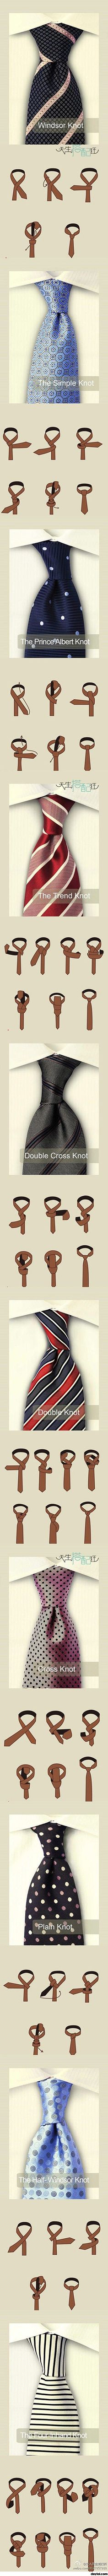 Different ways to tie a tie and look like a distinguished gentleman - DayLoL.com - Your Daily LoL and Entertainment!